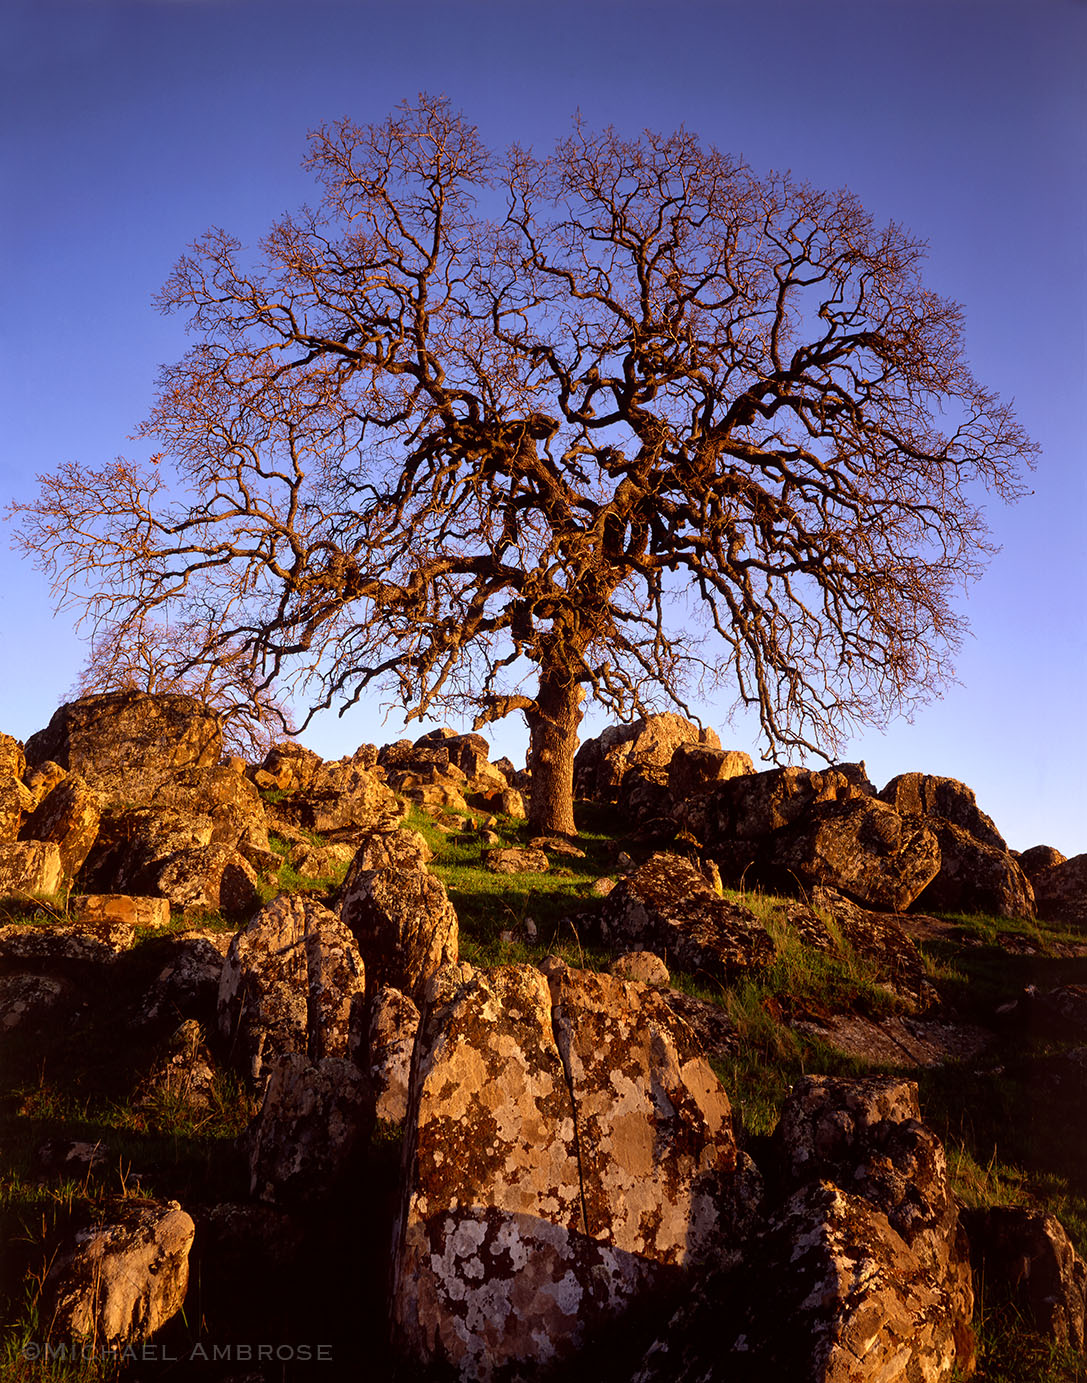 Brilliant golden light warms a wintertime oak tree and lichen coated rock in the Sierra Nevada foothills of California.